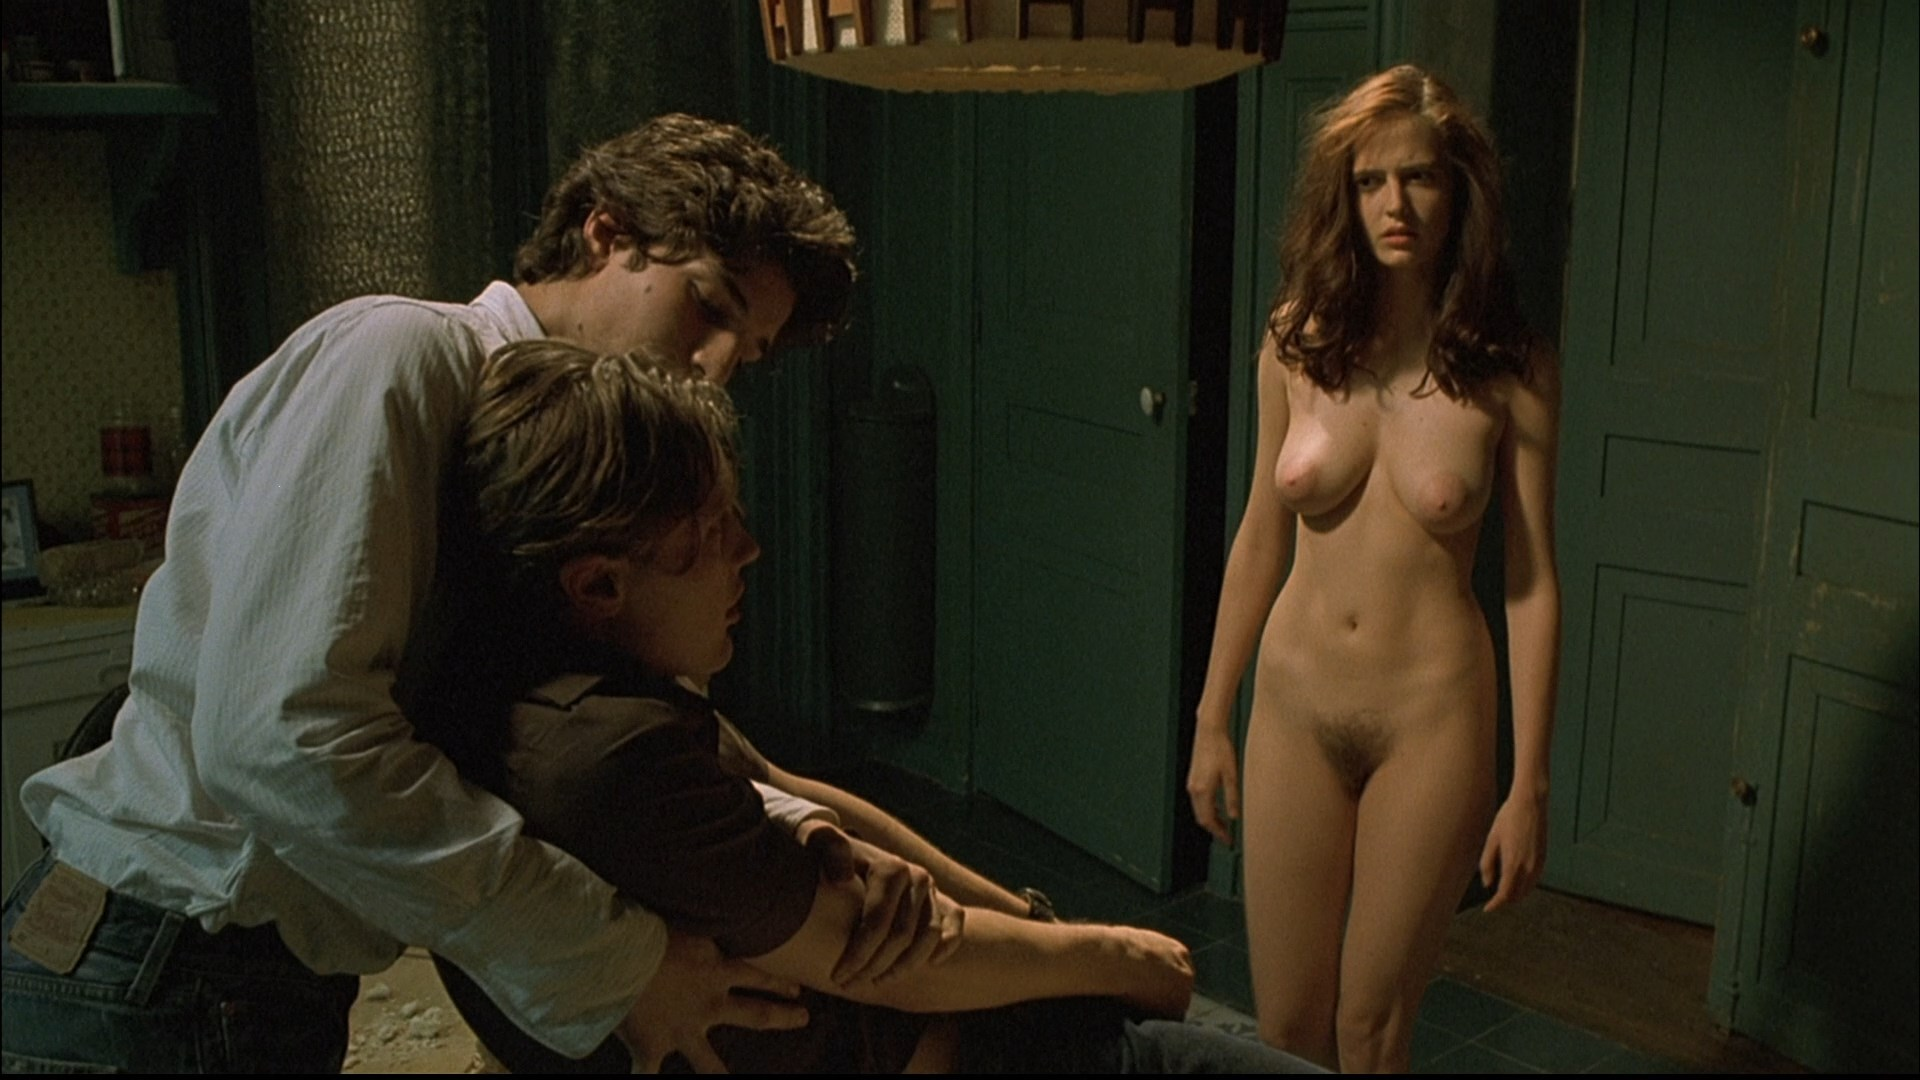 Eva Green full frontal in The Dreamers (2003)